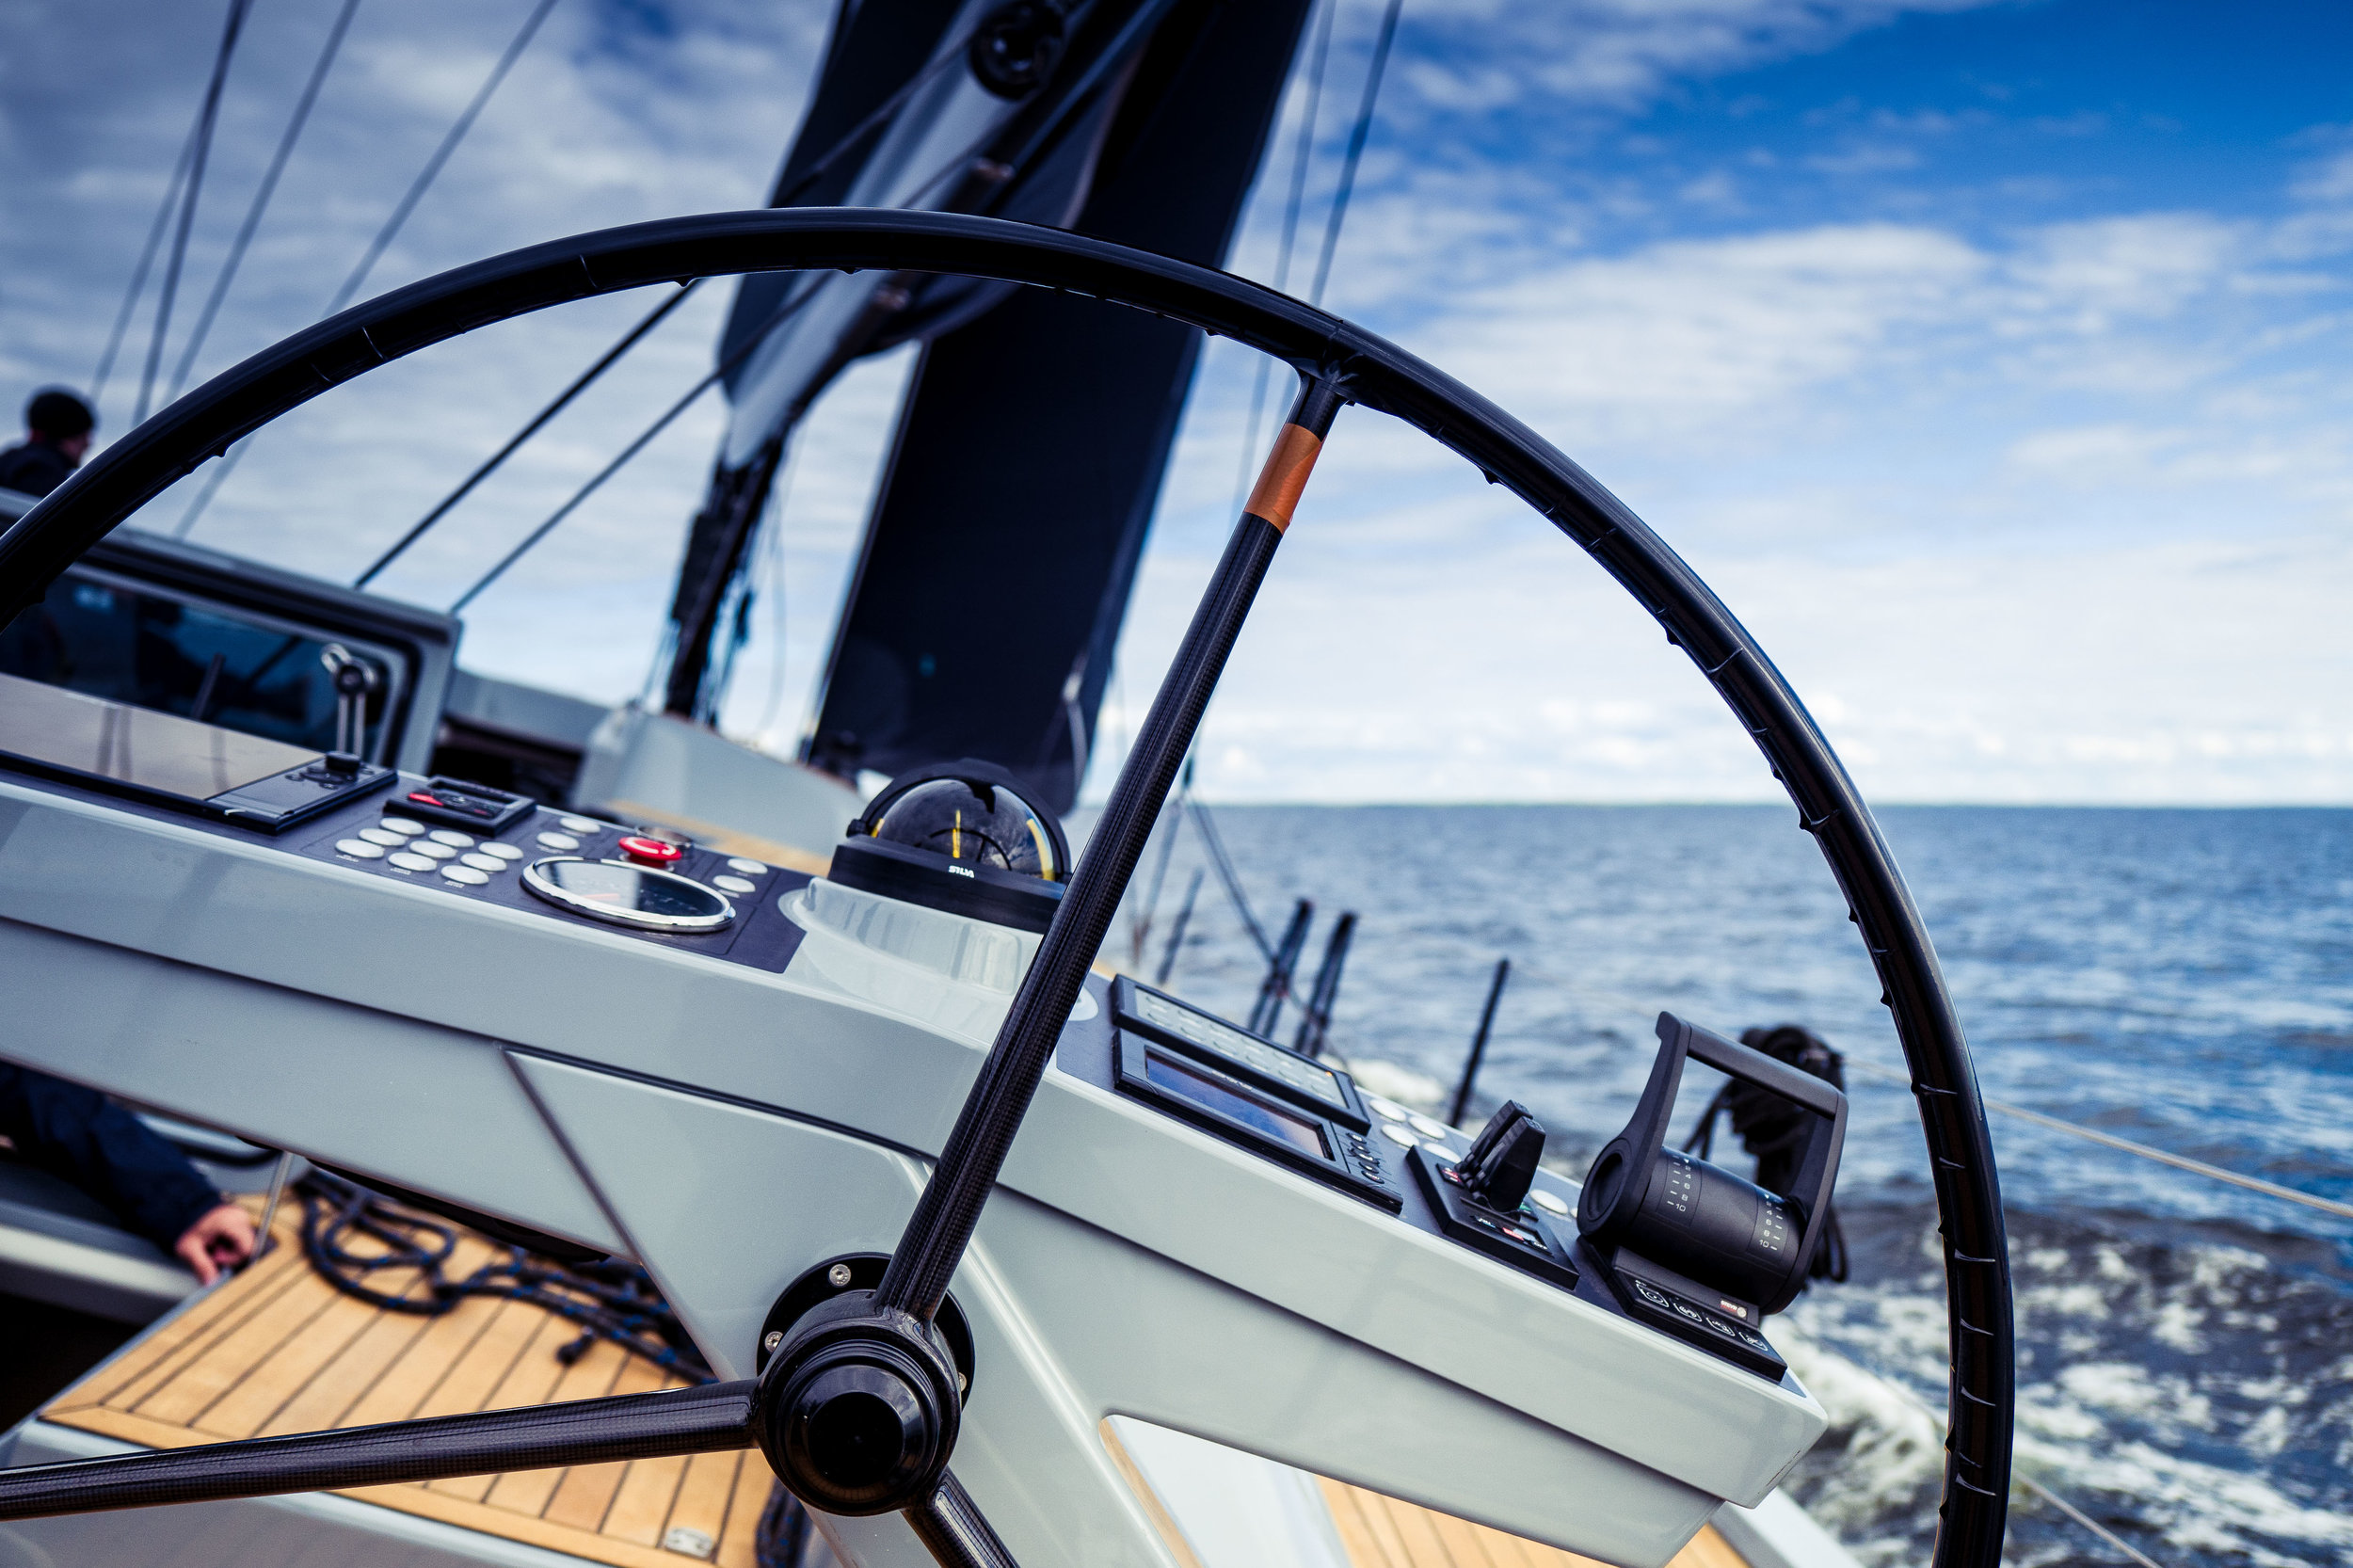 Starboard steering pedestal. Clean and uncluttered lay out of the instruments provides full attention on sailing. Photo by: Daniel Novello